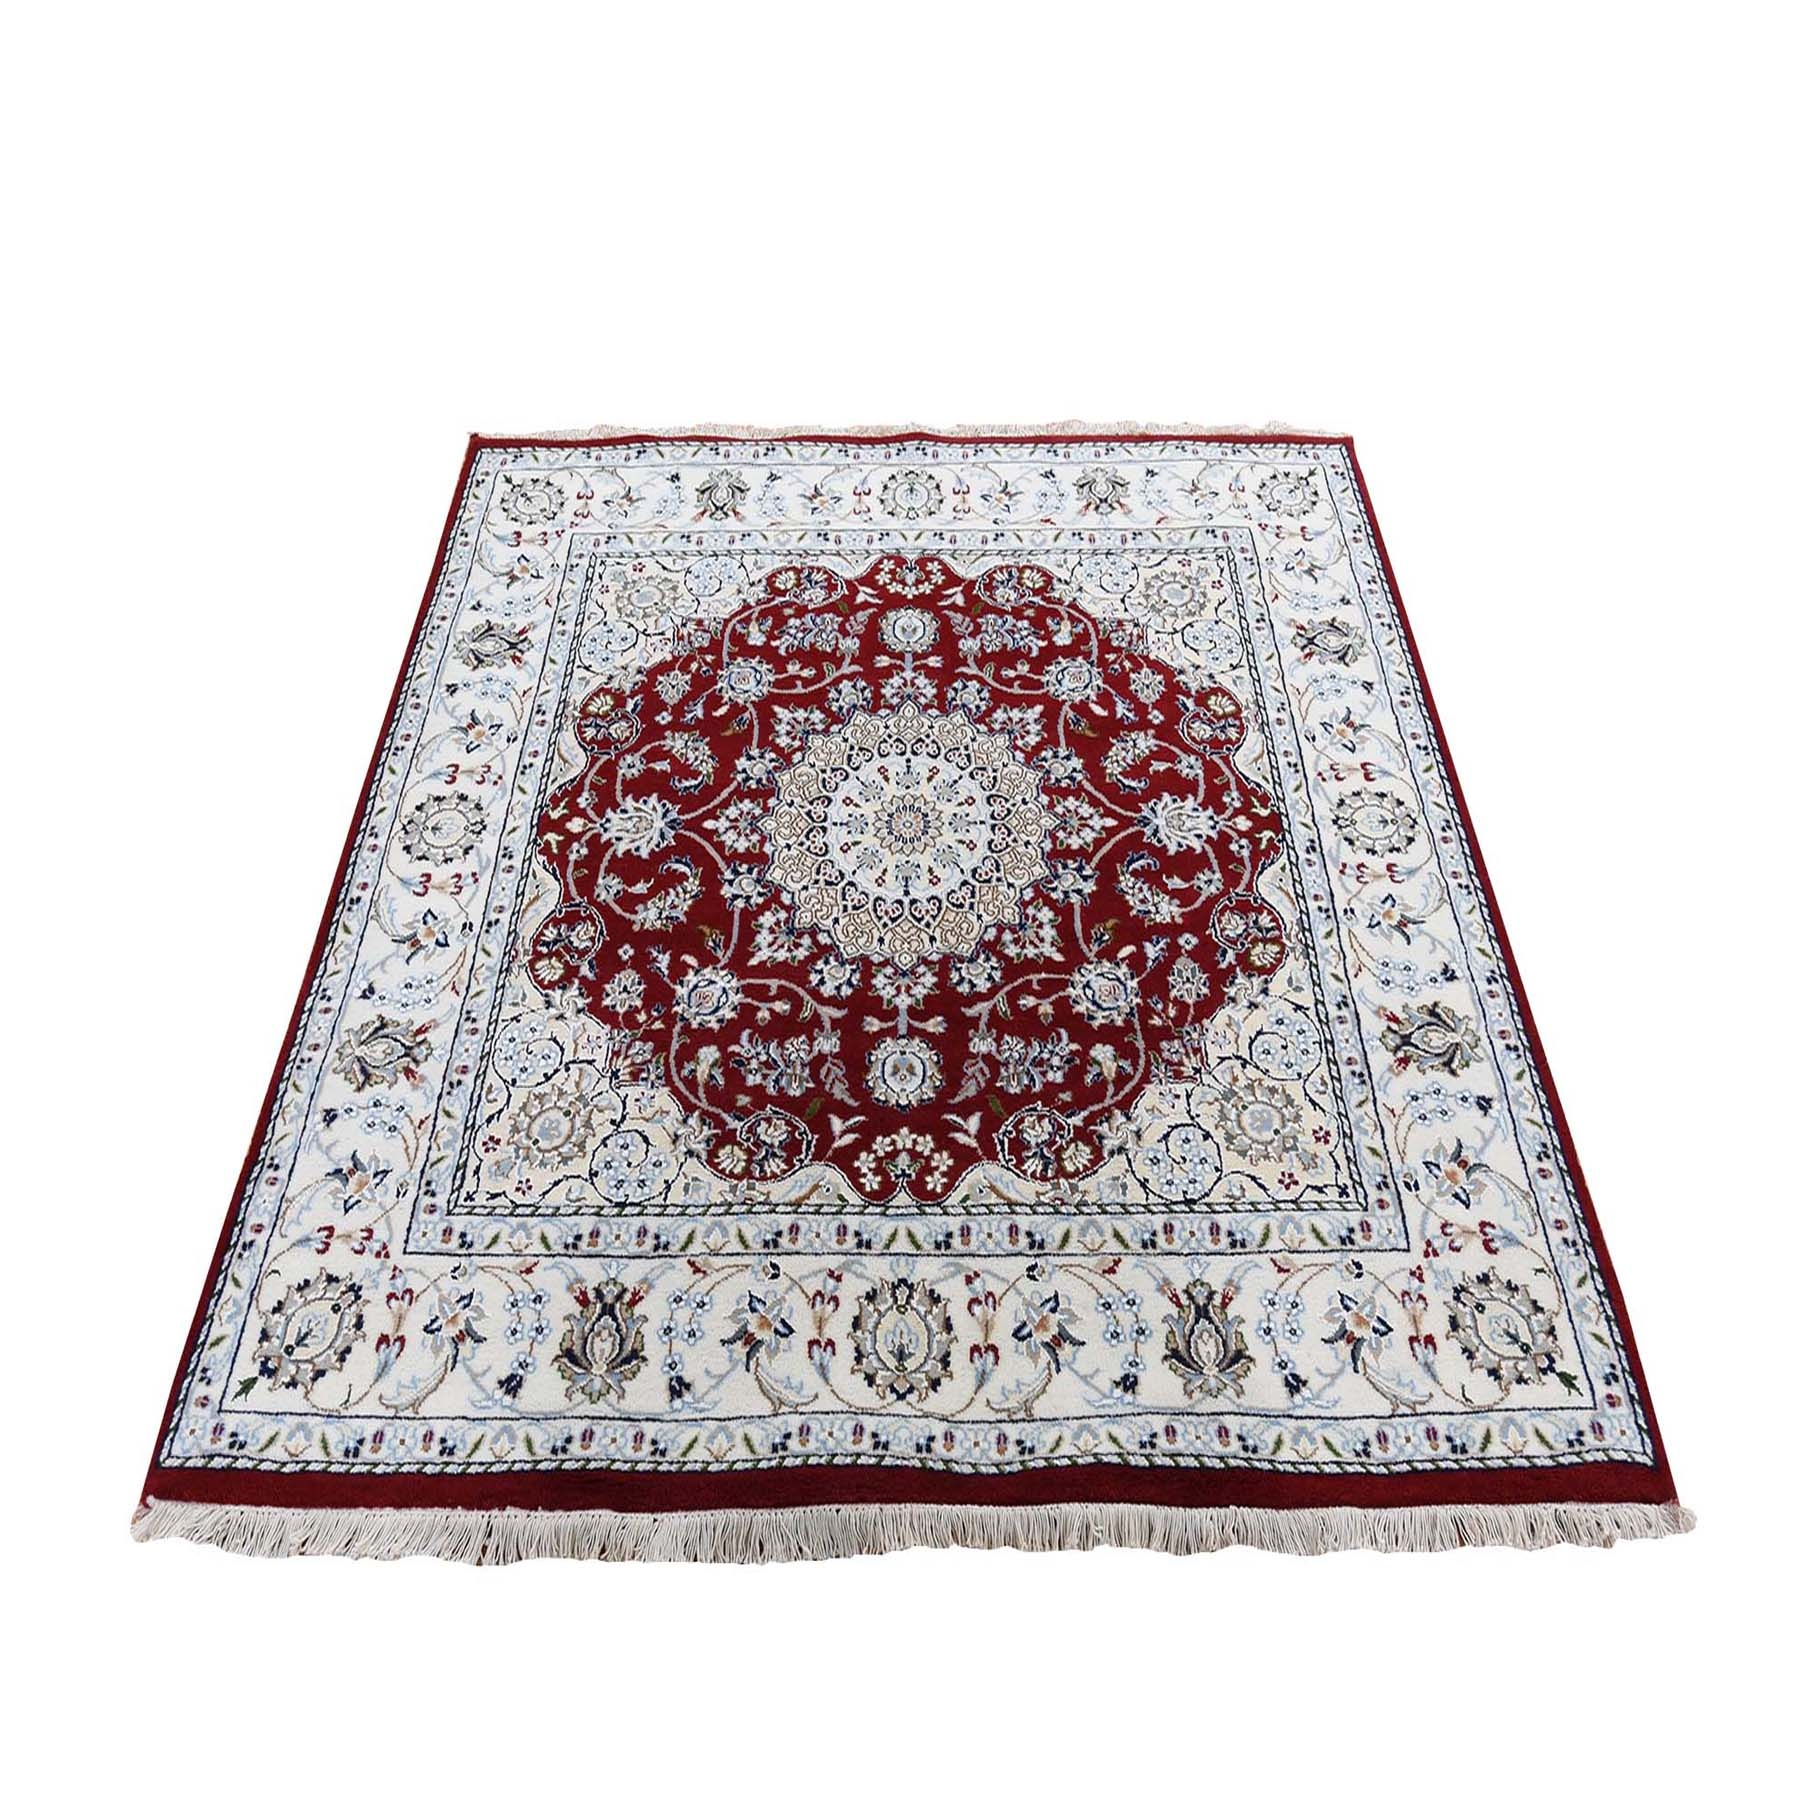 6'X6' Red Square Nain Wool And Silk 250 Kpsi Hand Knotted Oriental Rug moad76d8